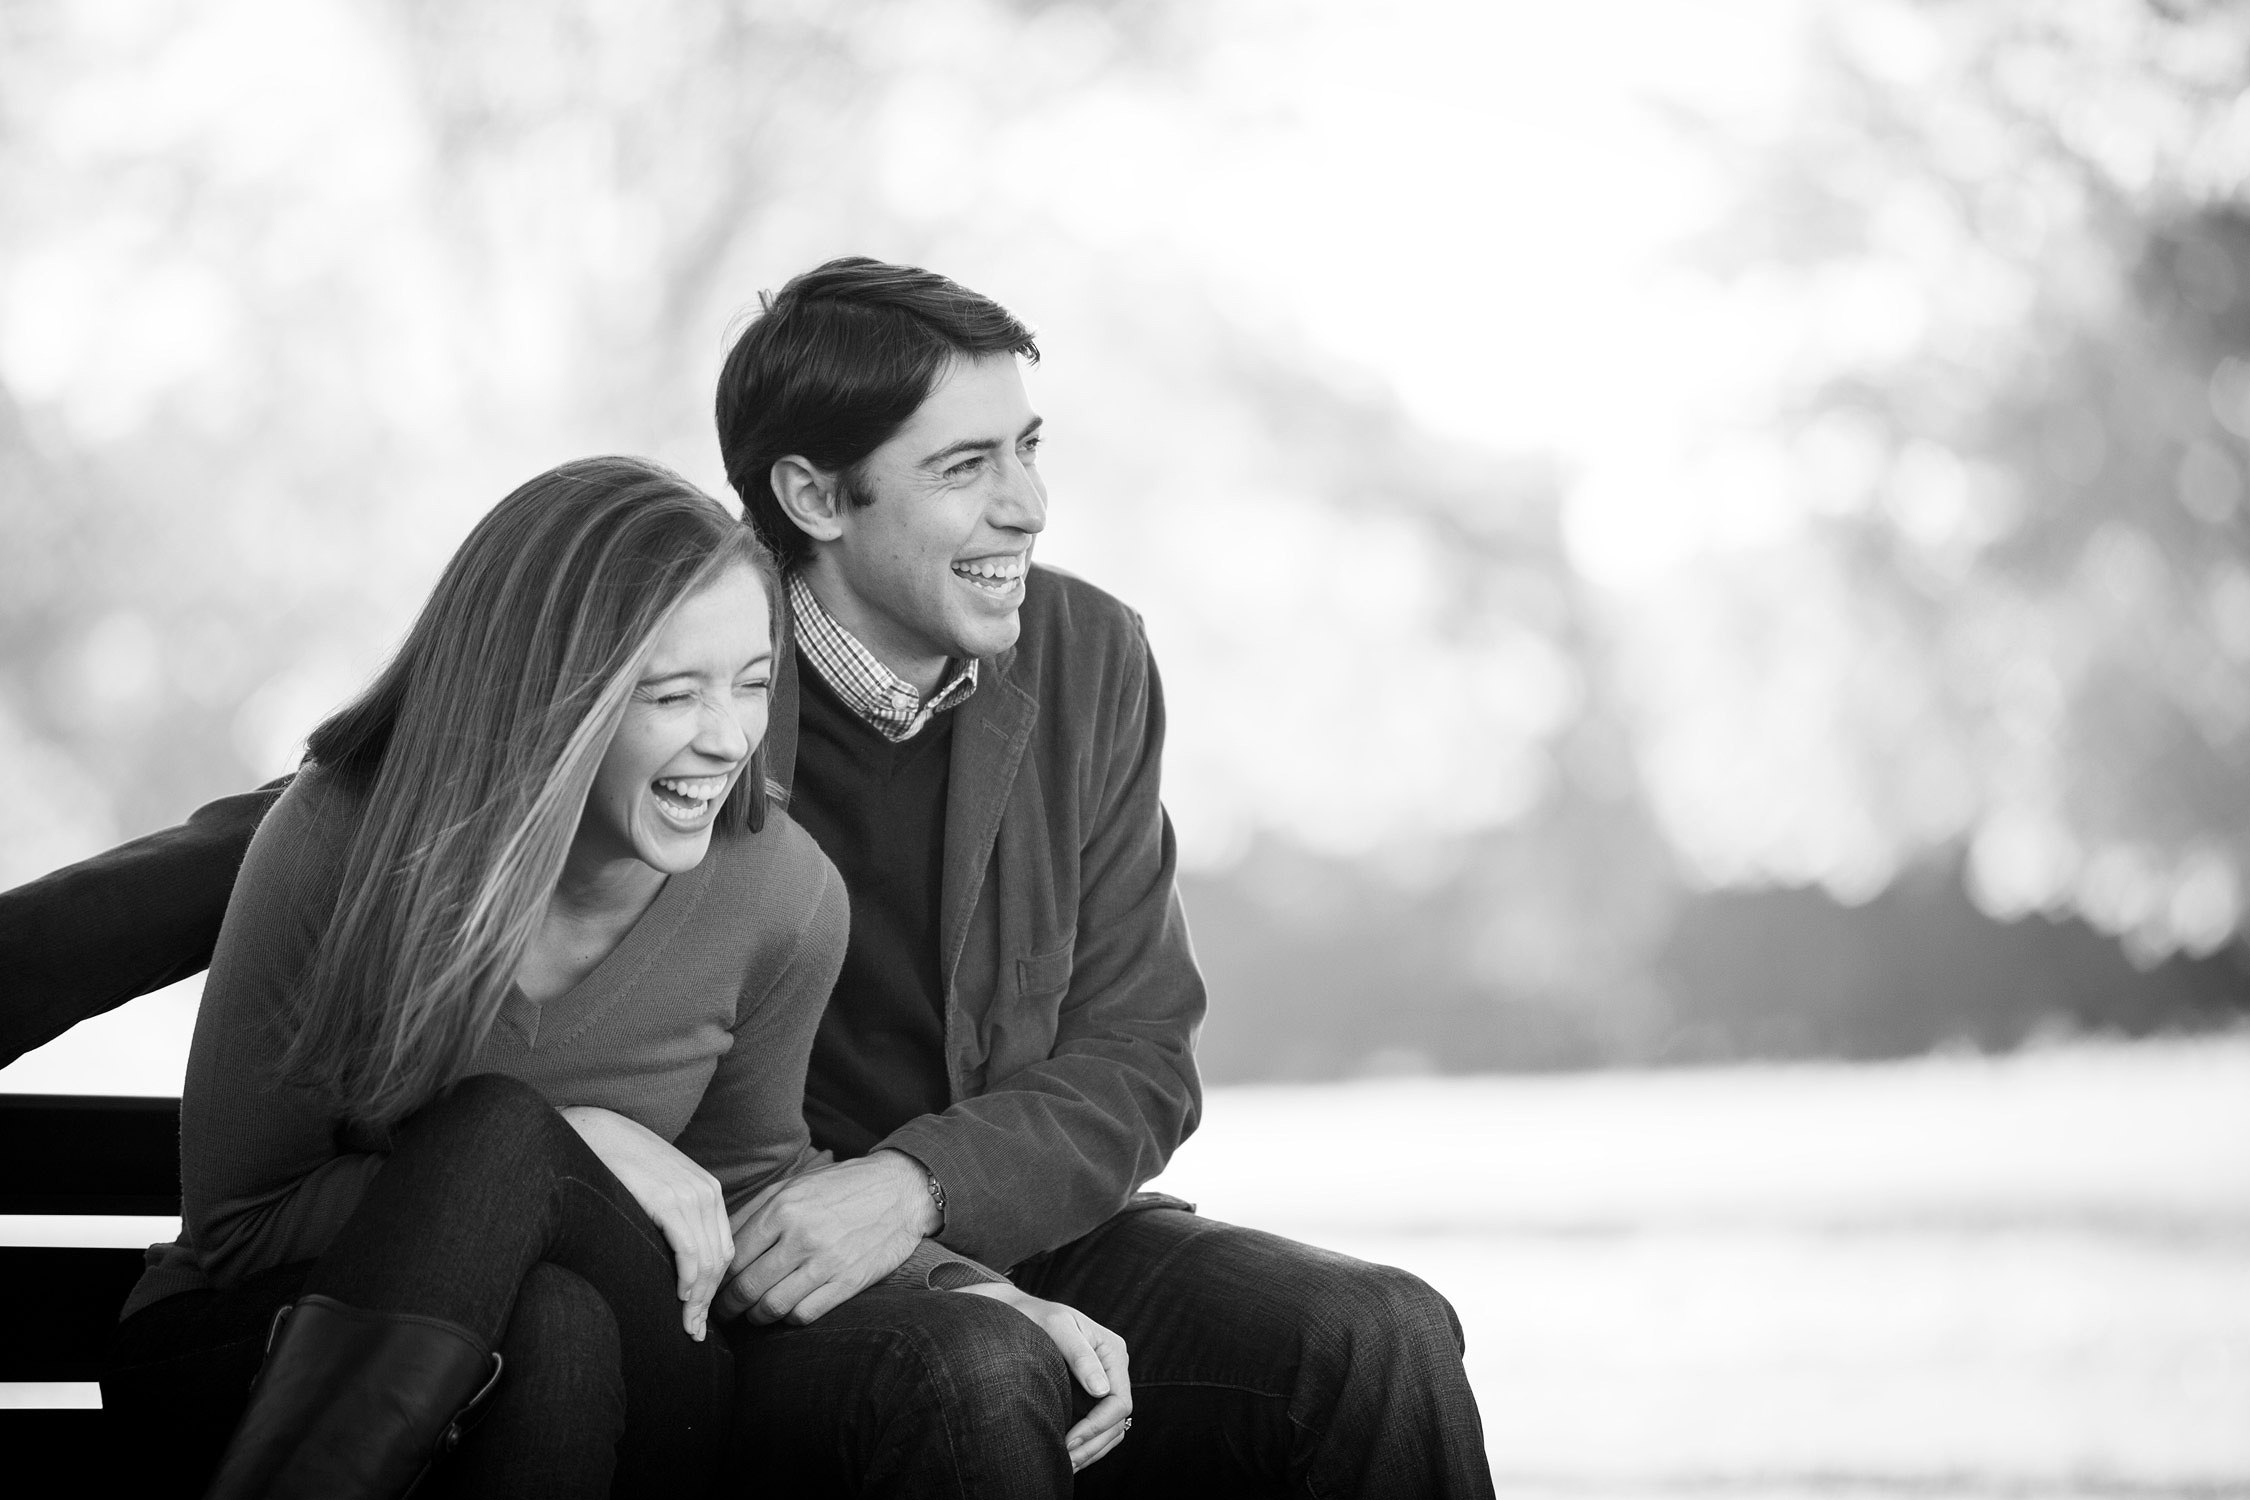 A couple laughs hysterically while sitting on a bench at All Souls Interfaith Gathering during an engagement session by Vermont wedding photographer Stina Booth